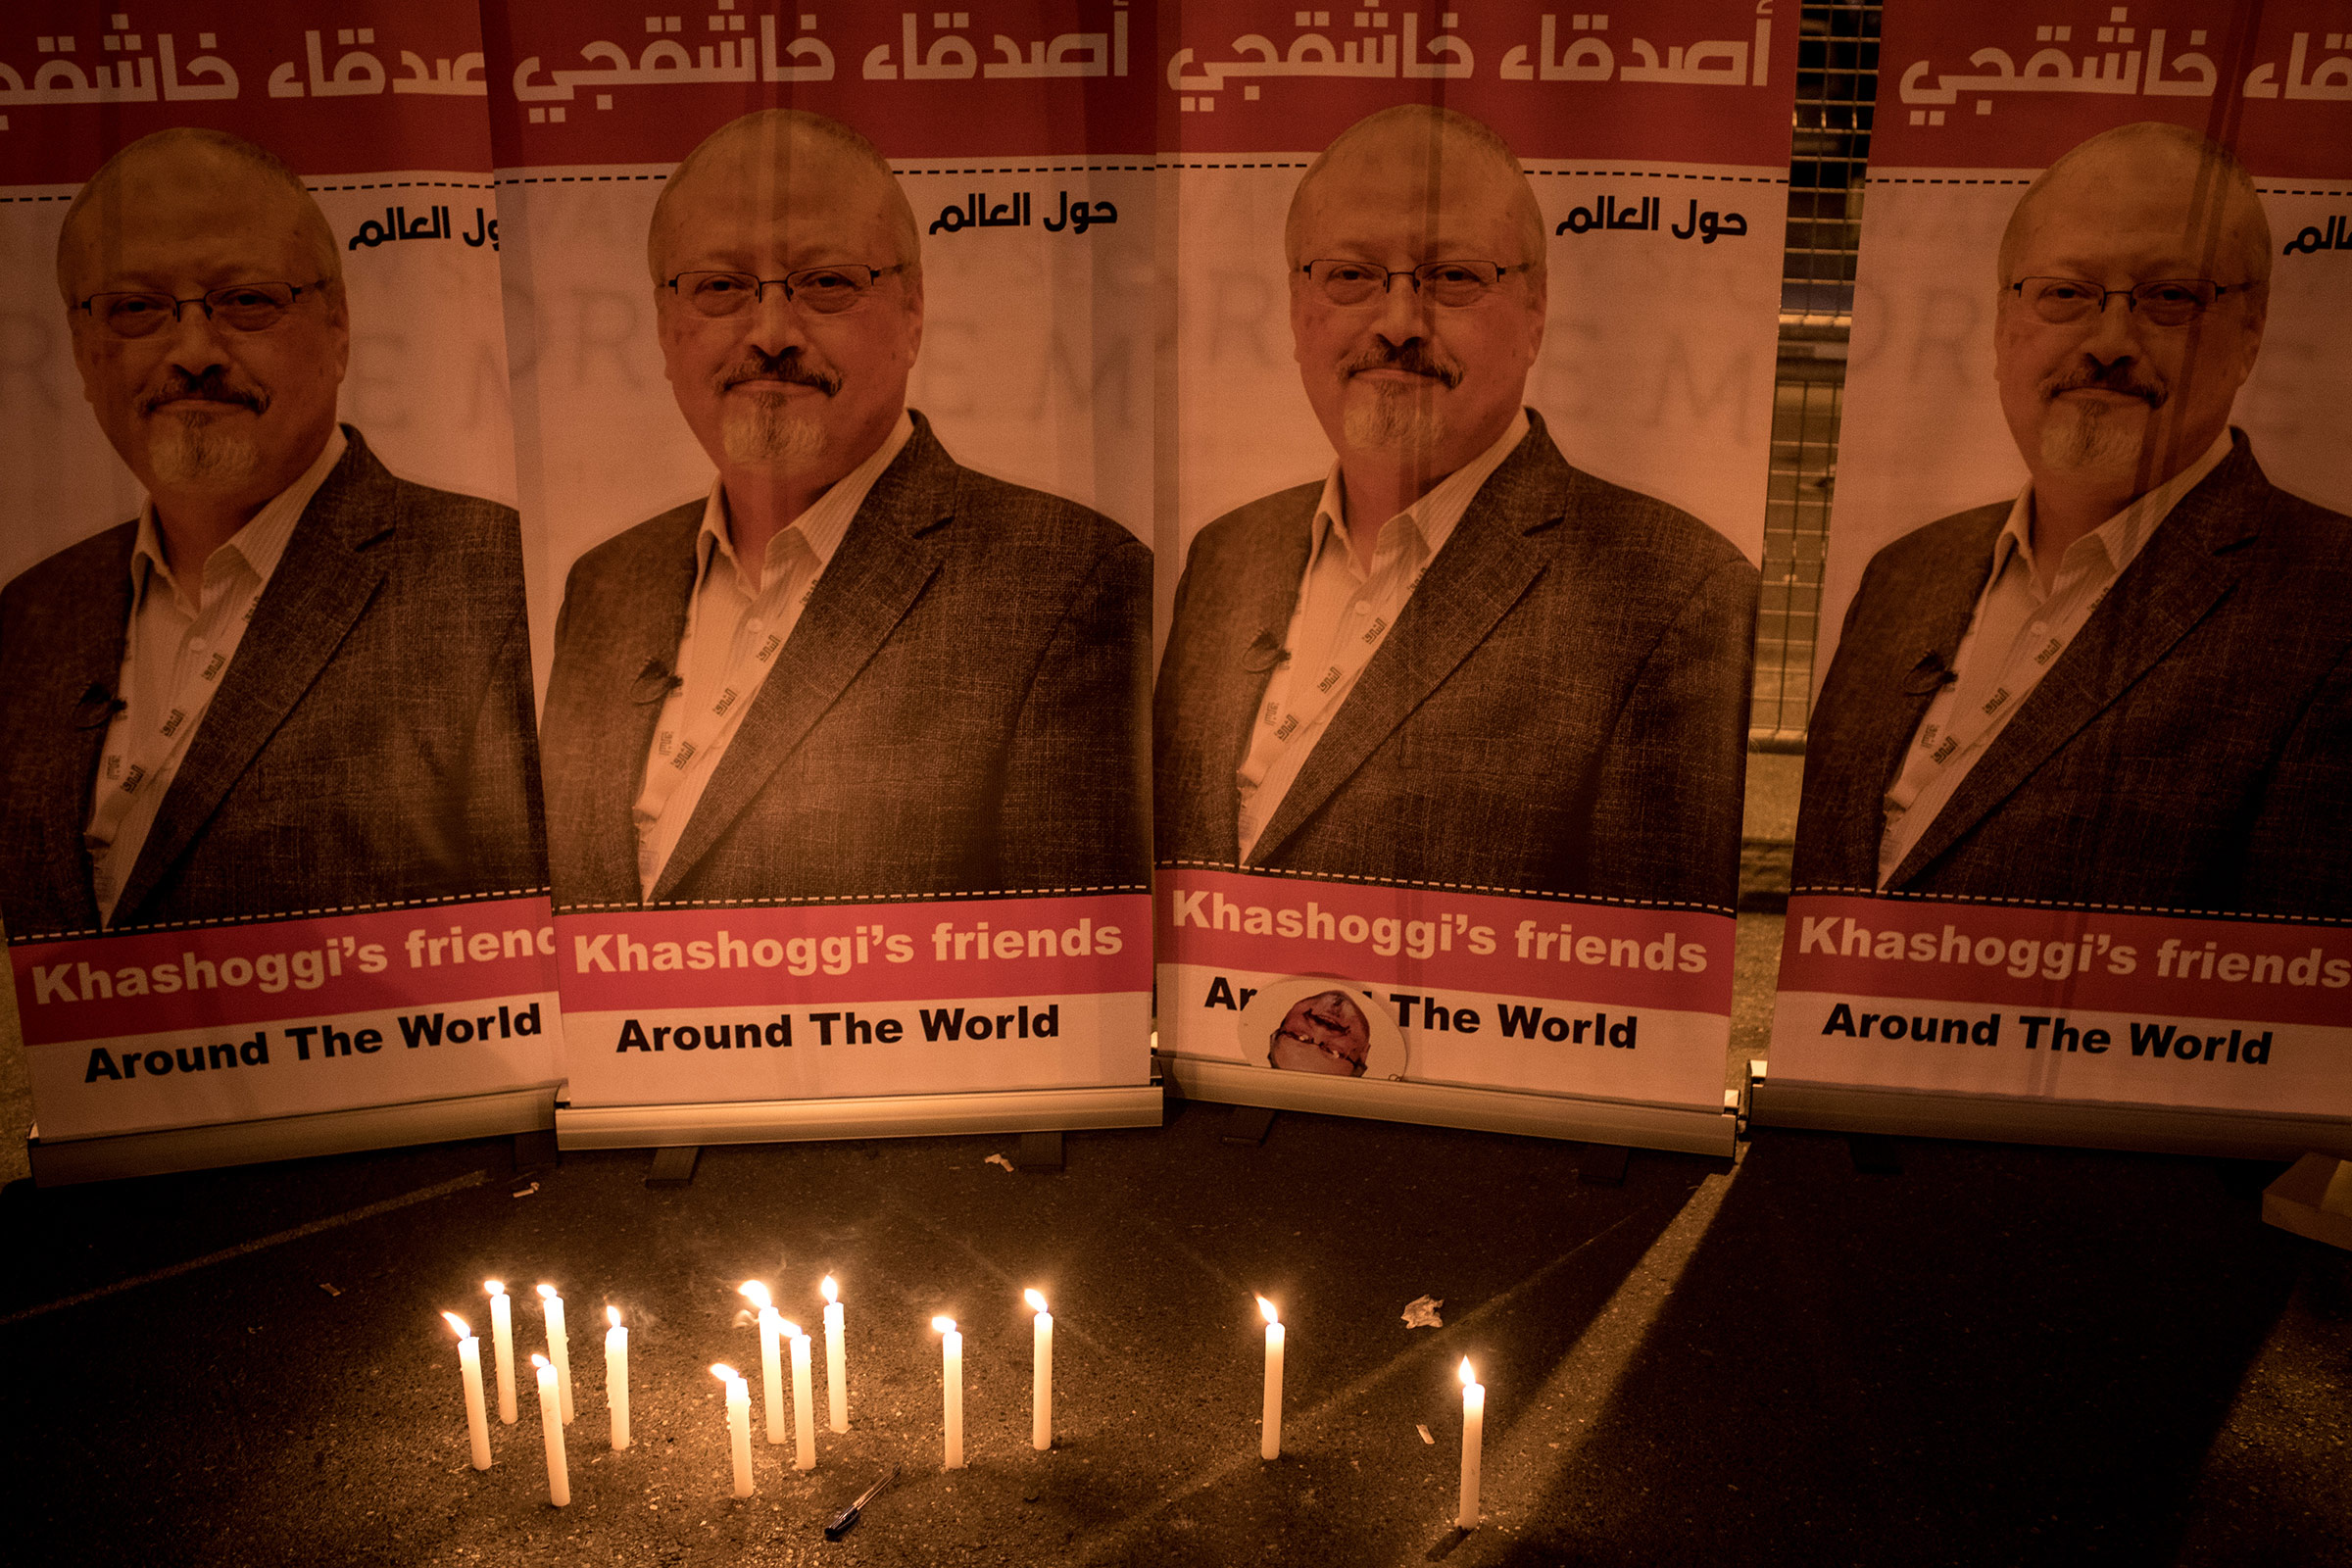 A candle light vigil is held to remember journalist Jamal Khashoggi outside the Saudi Arabia consulate on Oct. 25, 2018 in Istanbul.